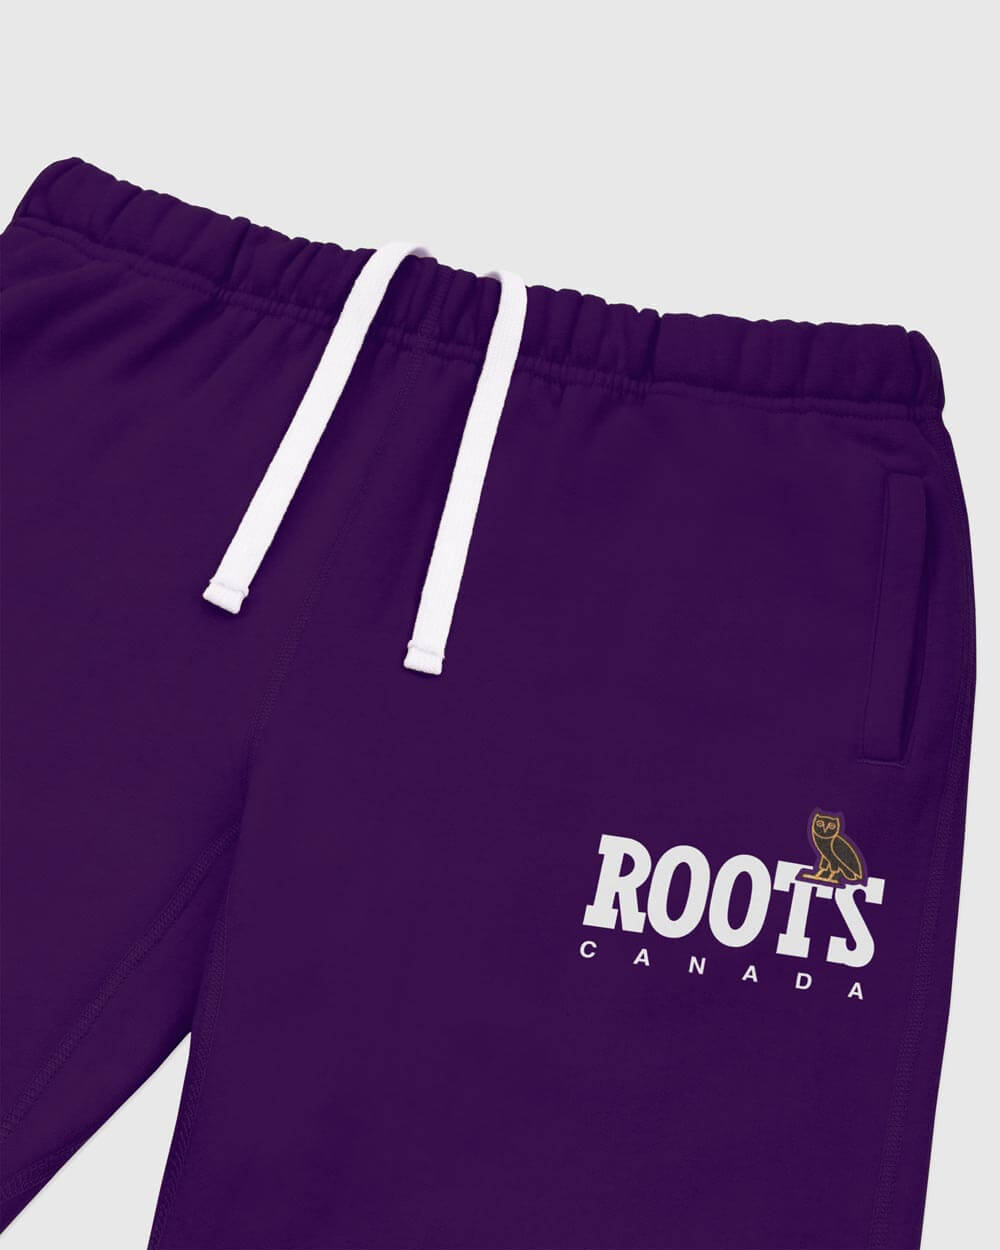 OVO x ROOTS WOMEN'S SWEATPANT - PURPLE